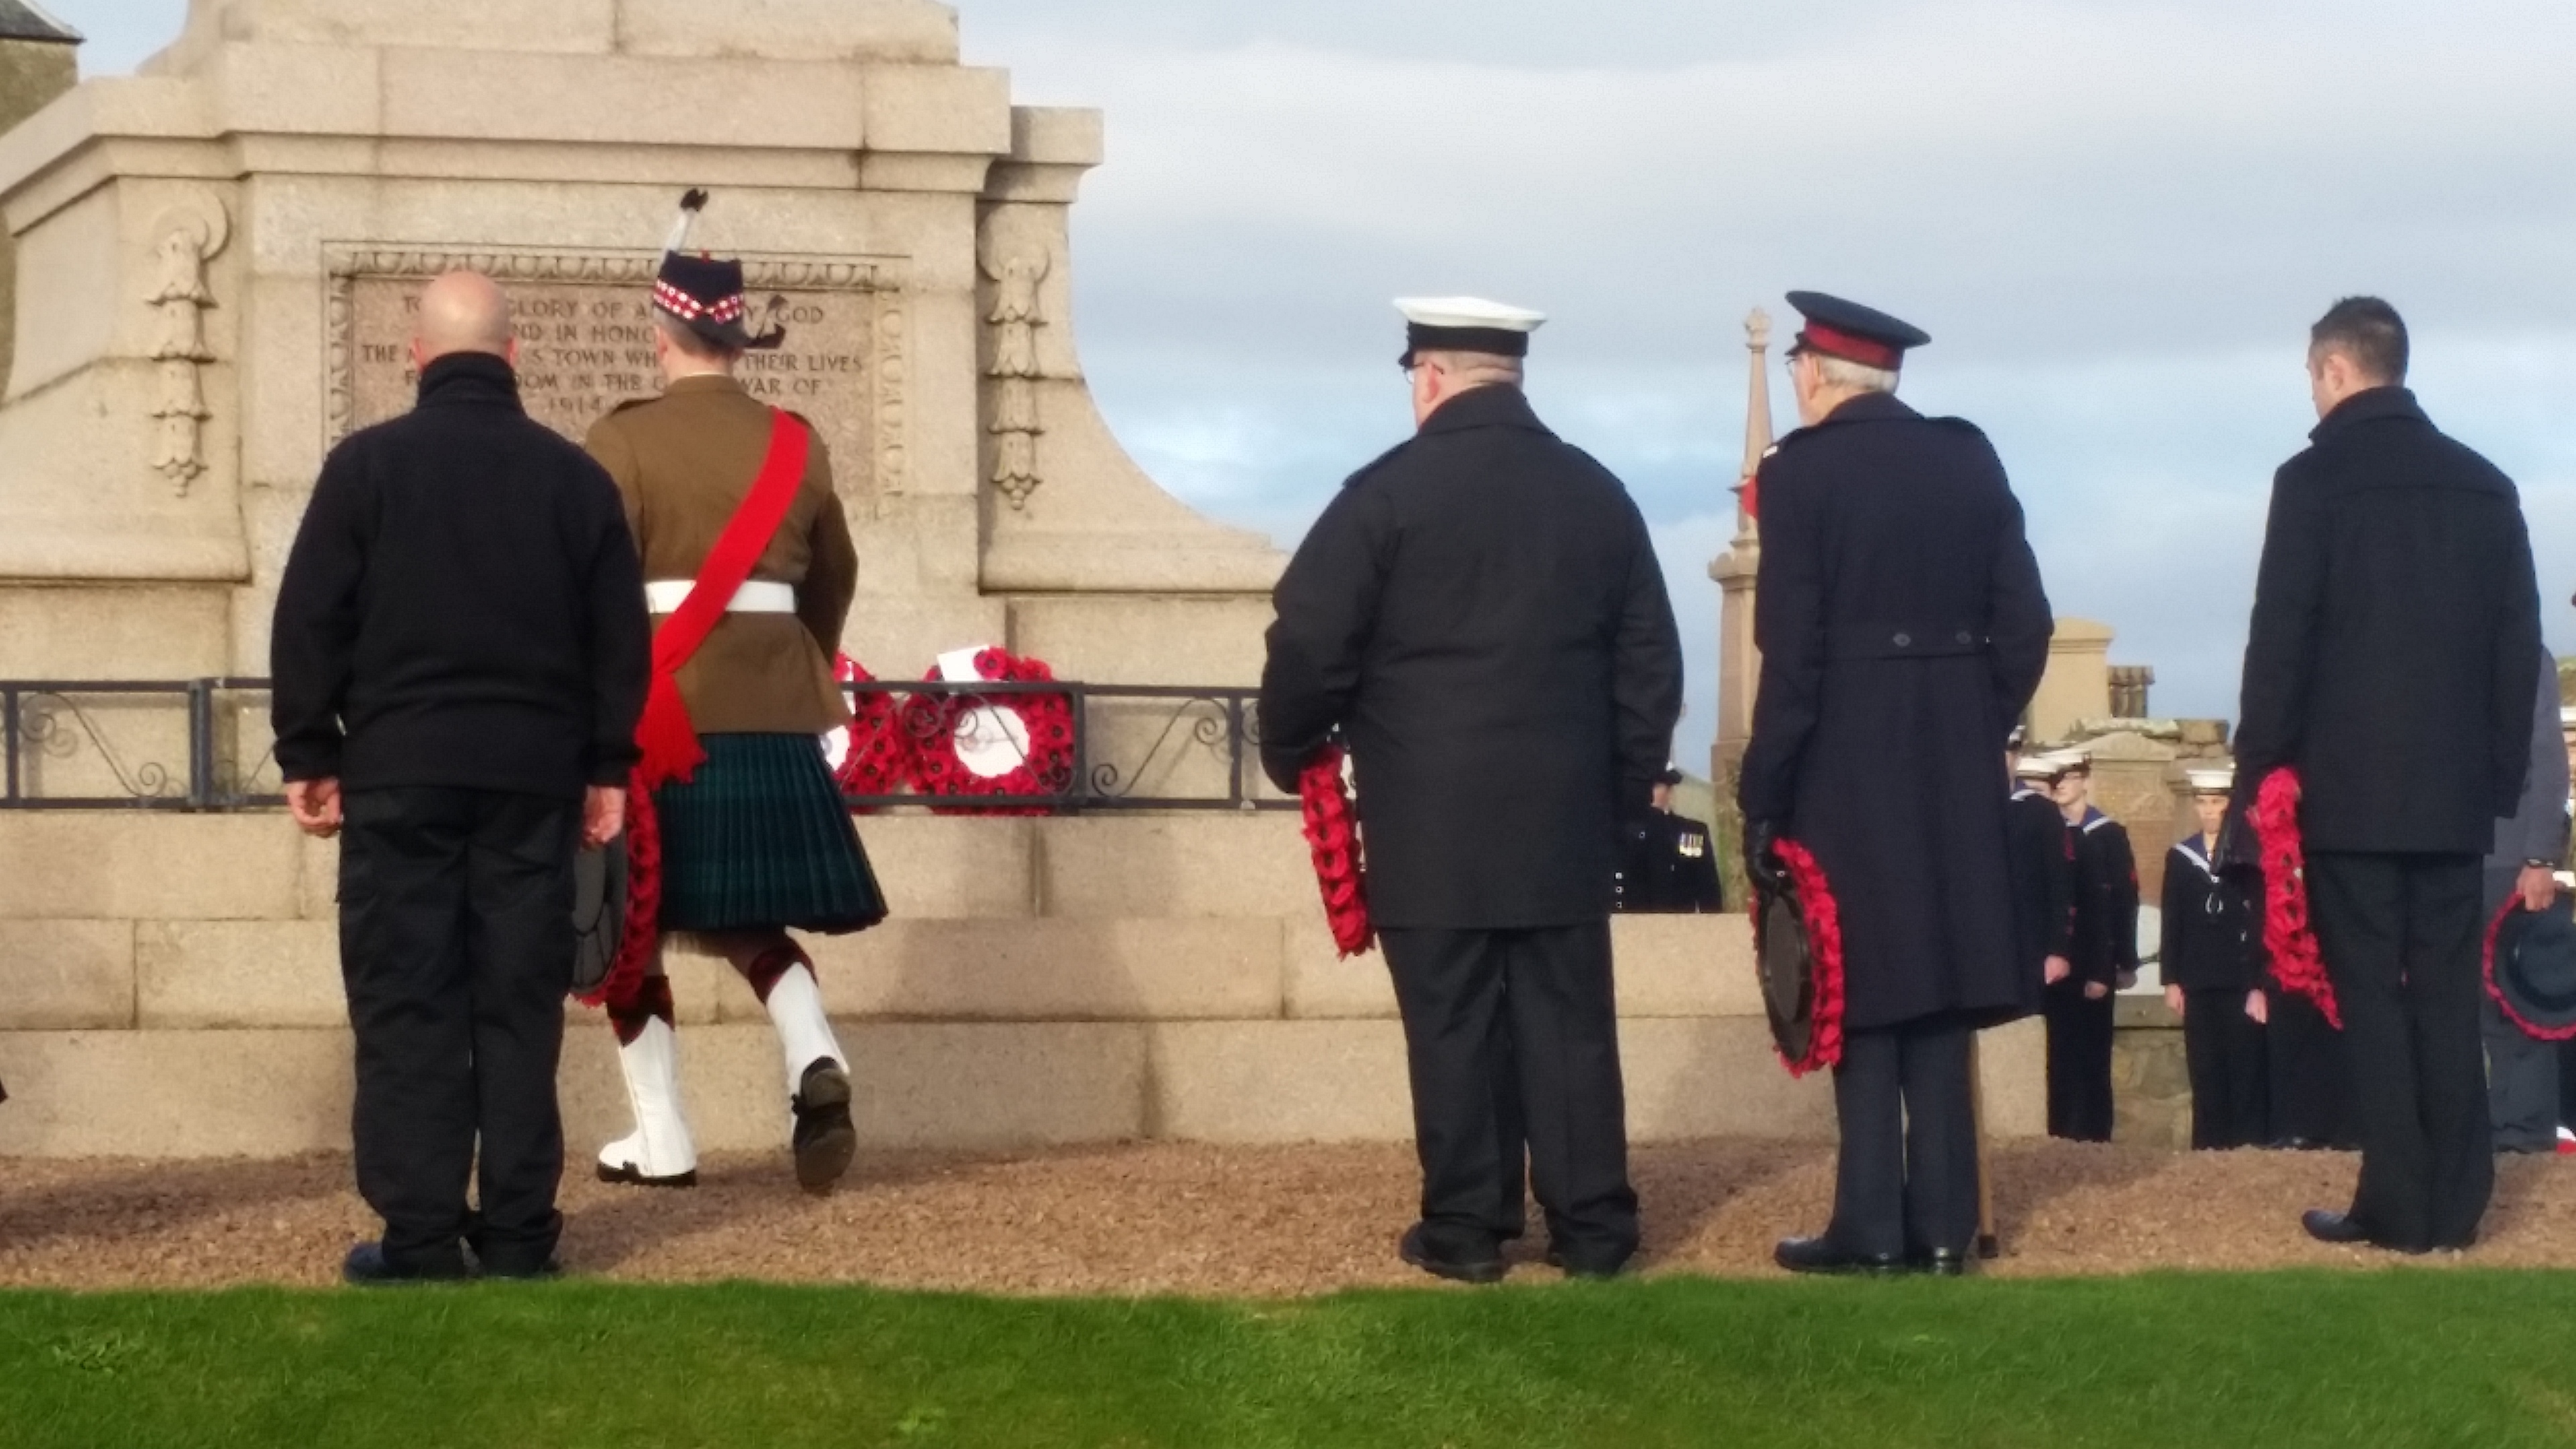 Remembrance Sunday in 2015